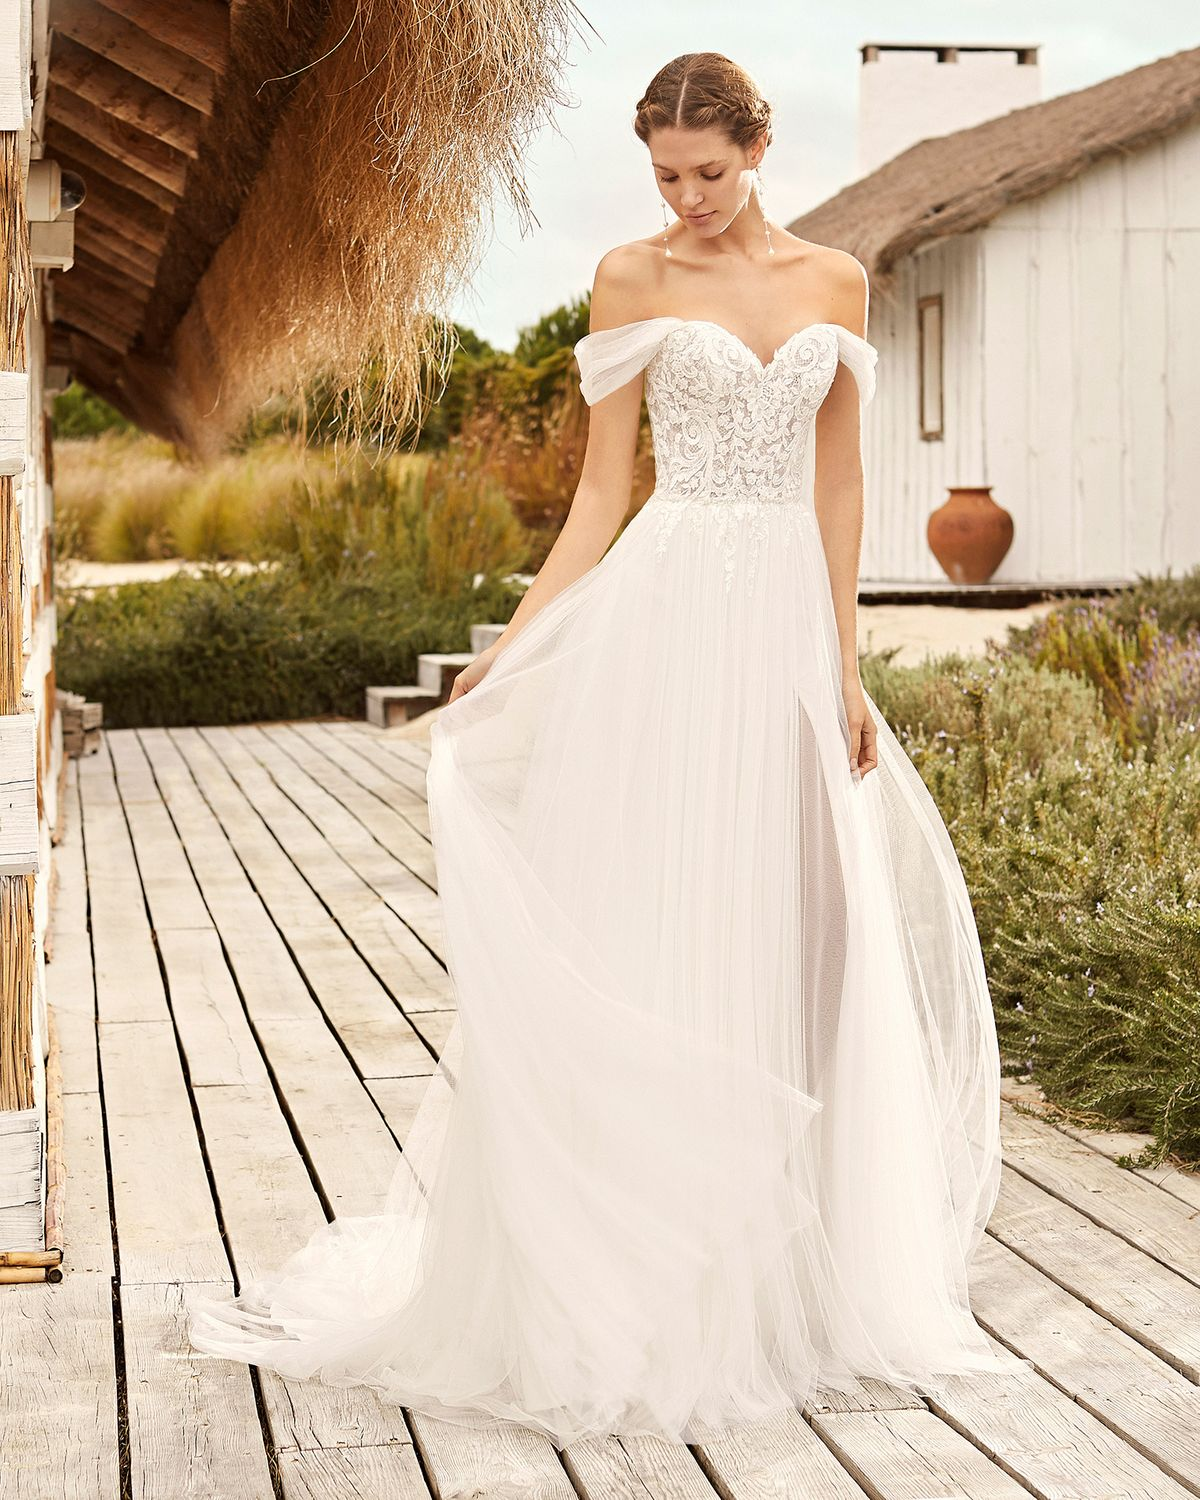 2021_VERANIA_AIRE_BEACH_WEDDING_1